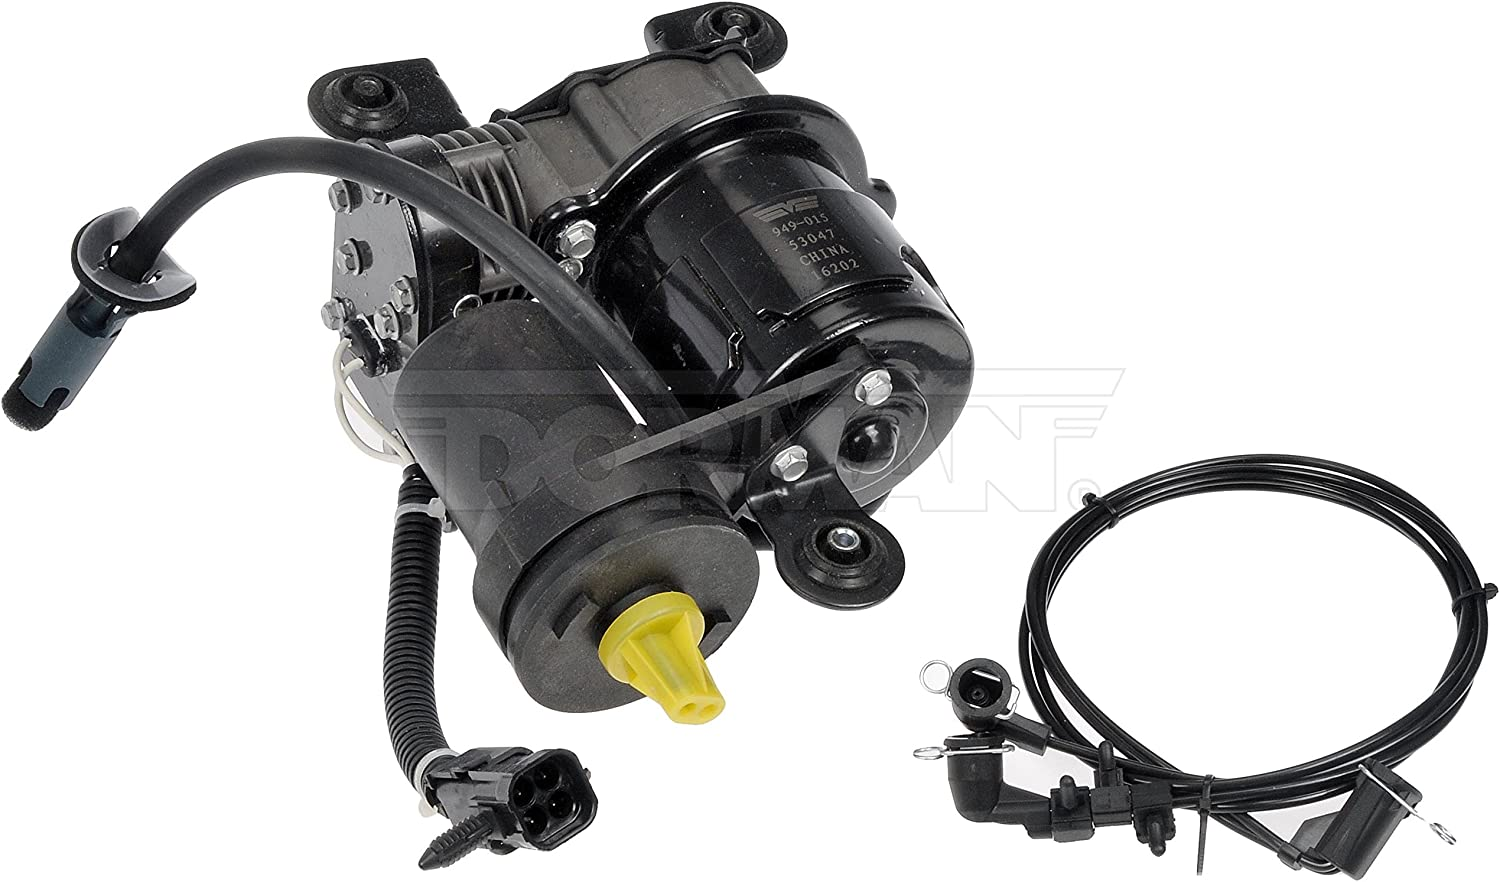 OFFicial shop Dorman 949-015 Air Suspension Compressor Olds for Buick security Select